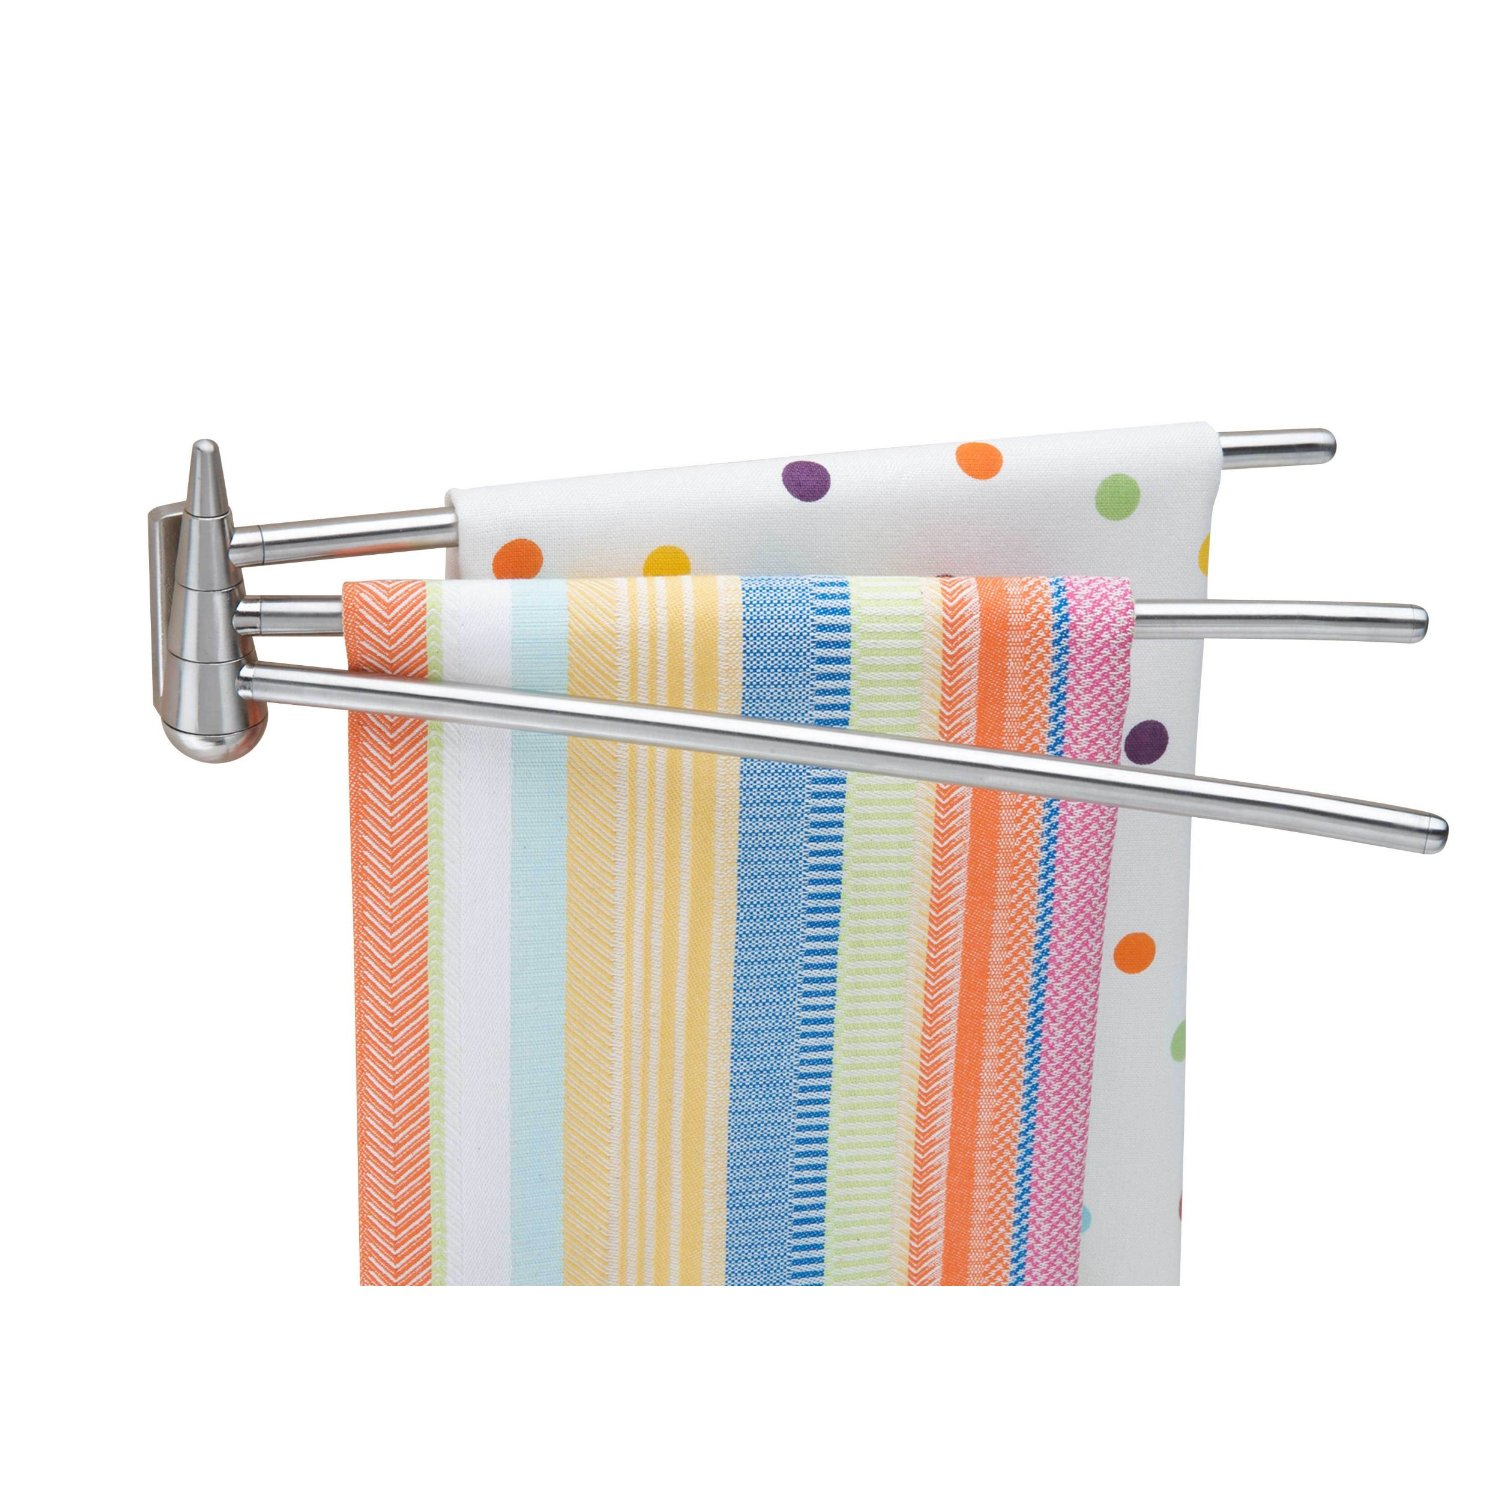 Kitchen Towel Racks Ventilation Options Love And Projects Days Of The Week Tea Towels